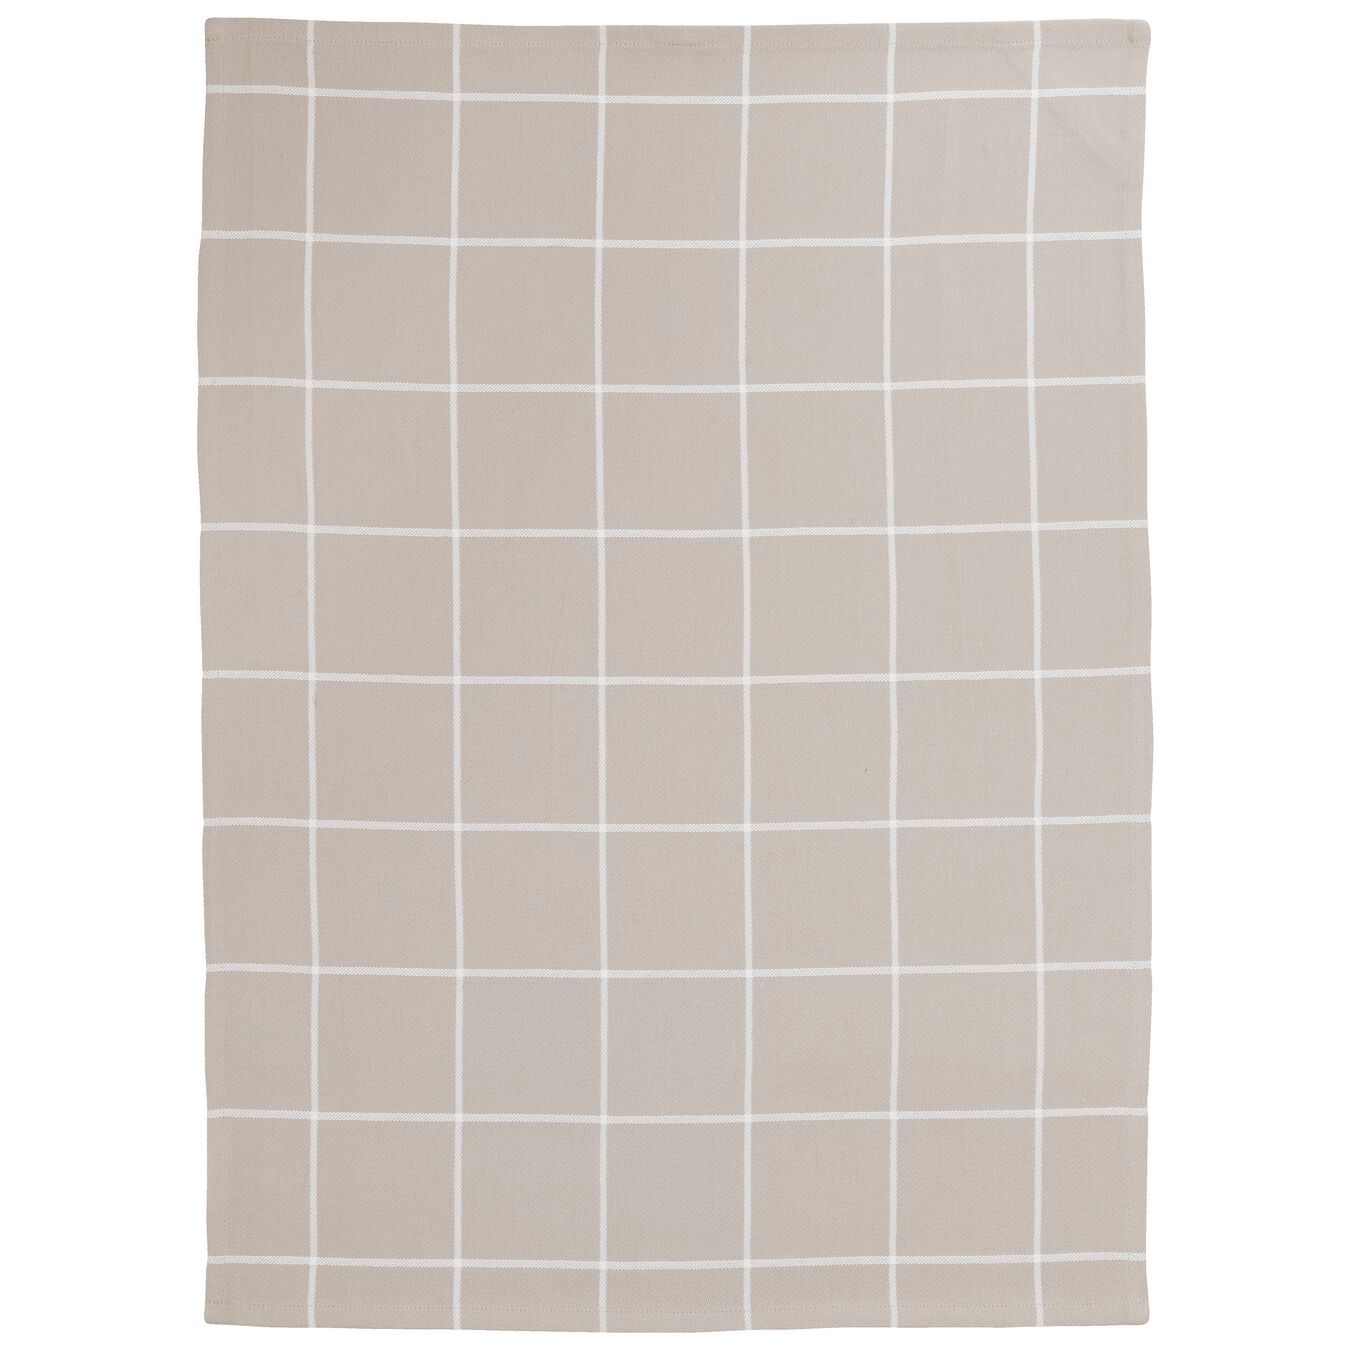 2 Piece Cotton Kitchen towel set checkered, taupe,,large 4